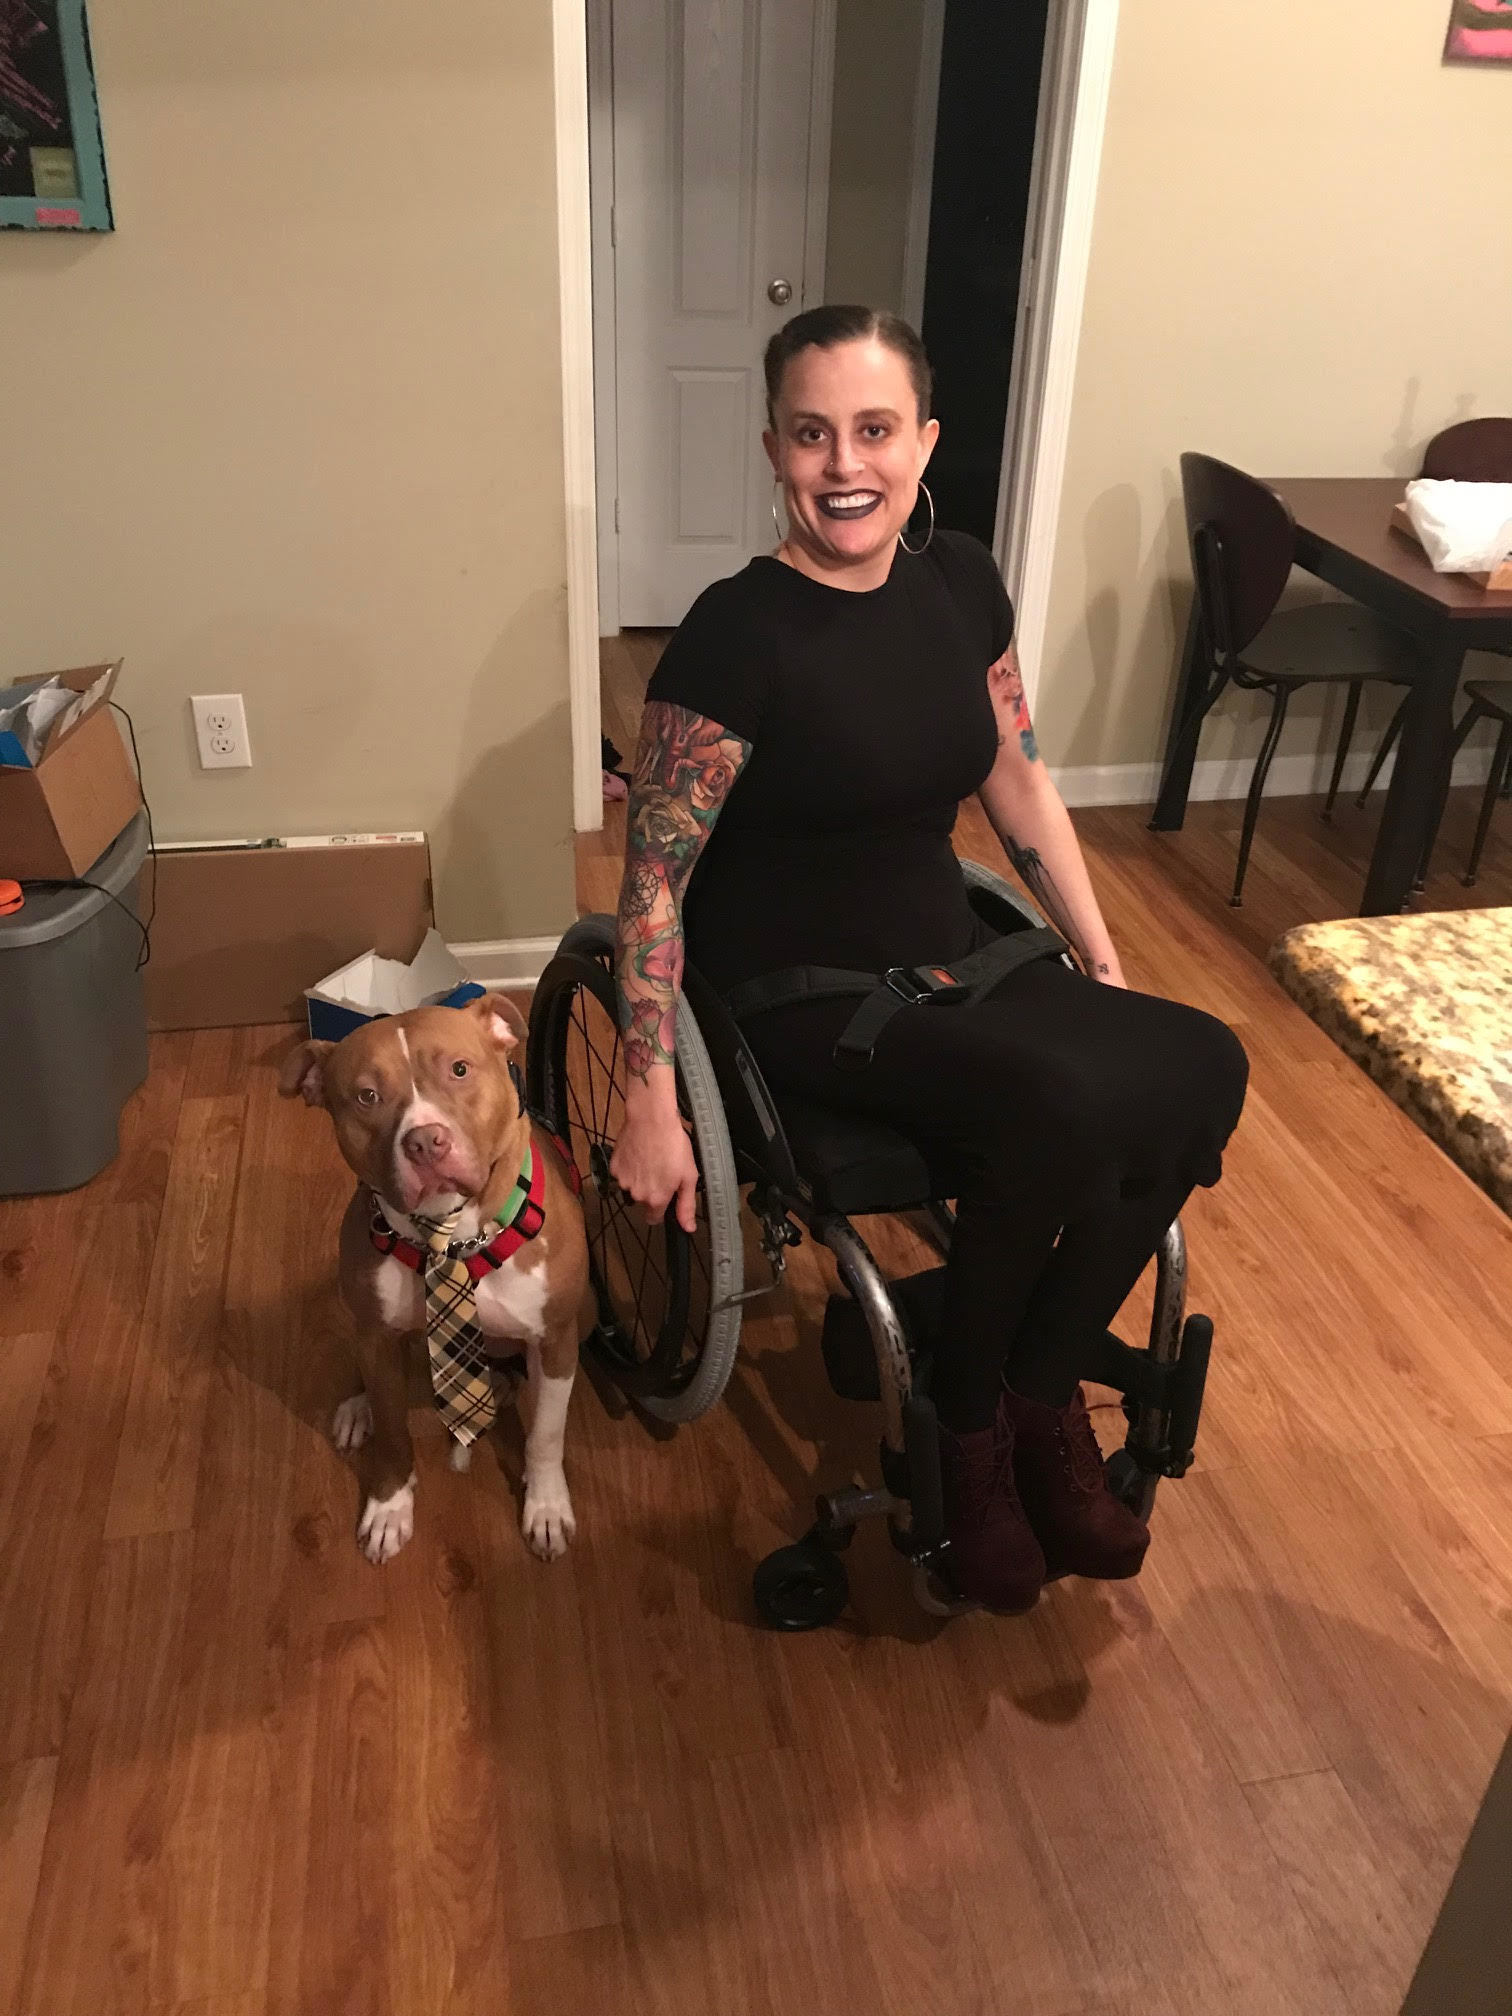 Courtney and her dog